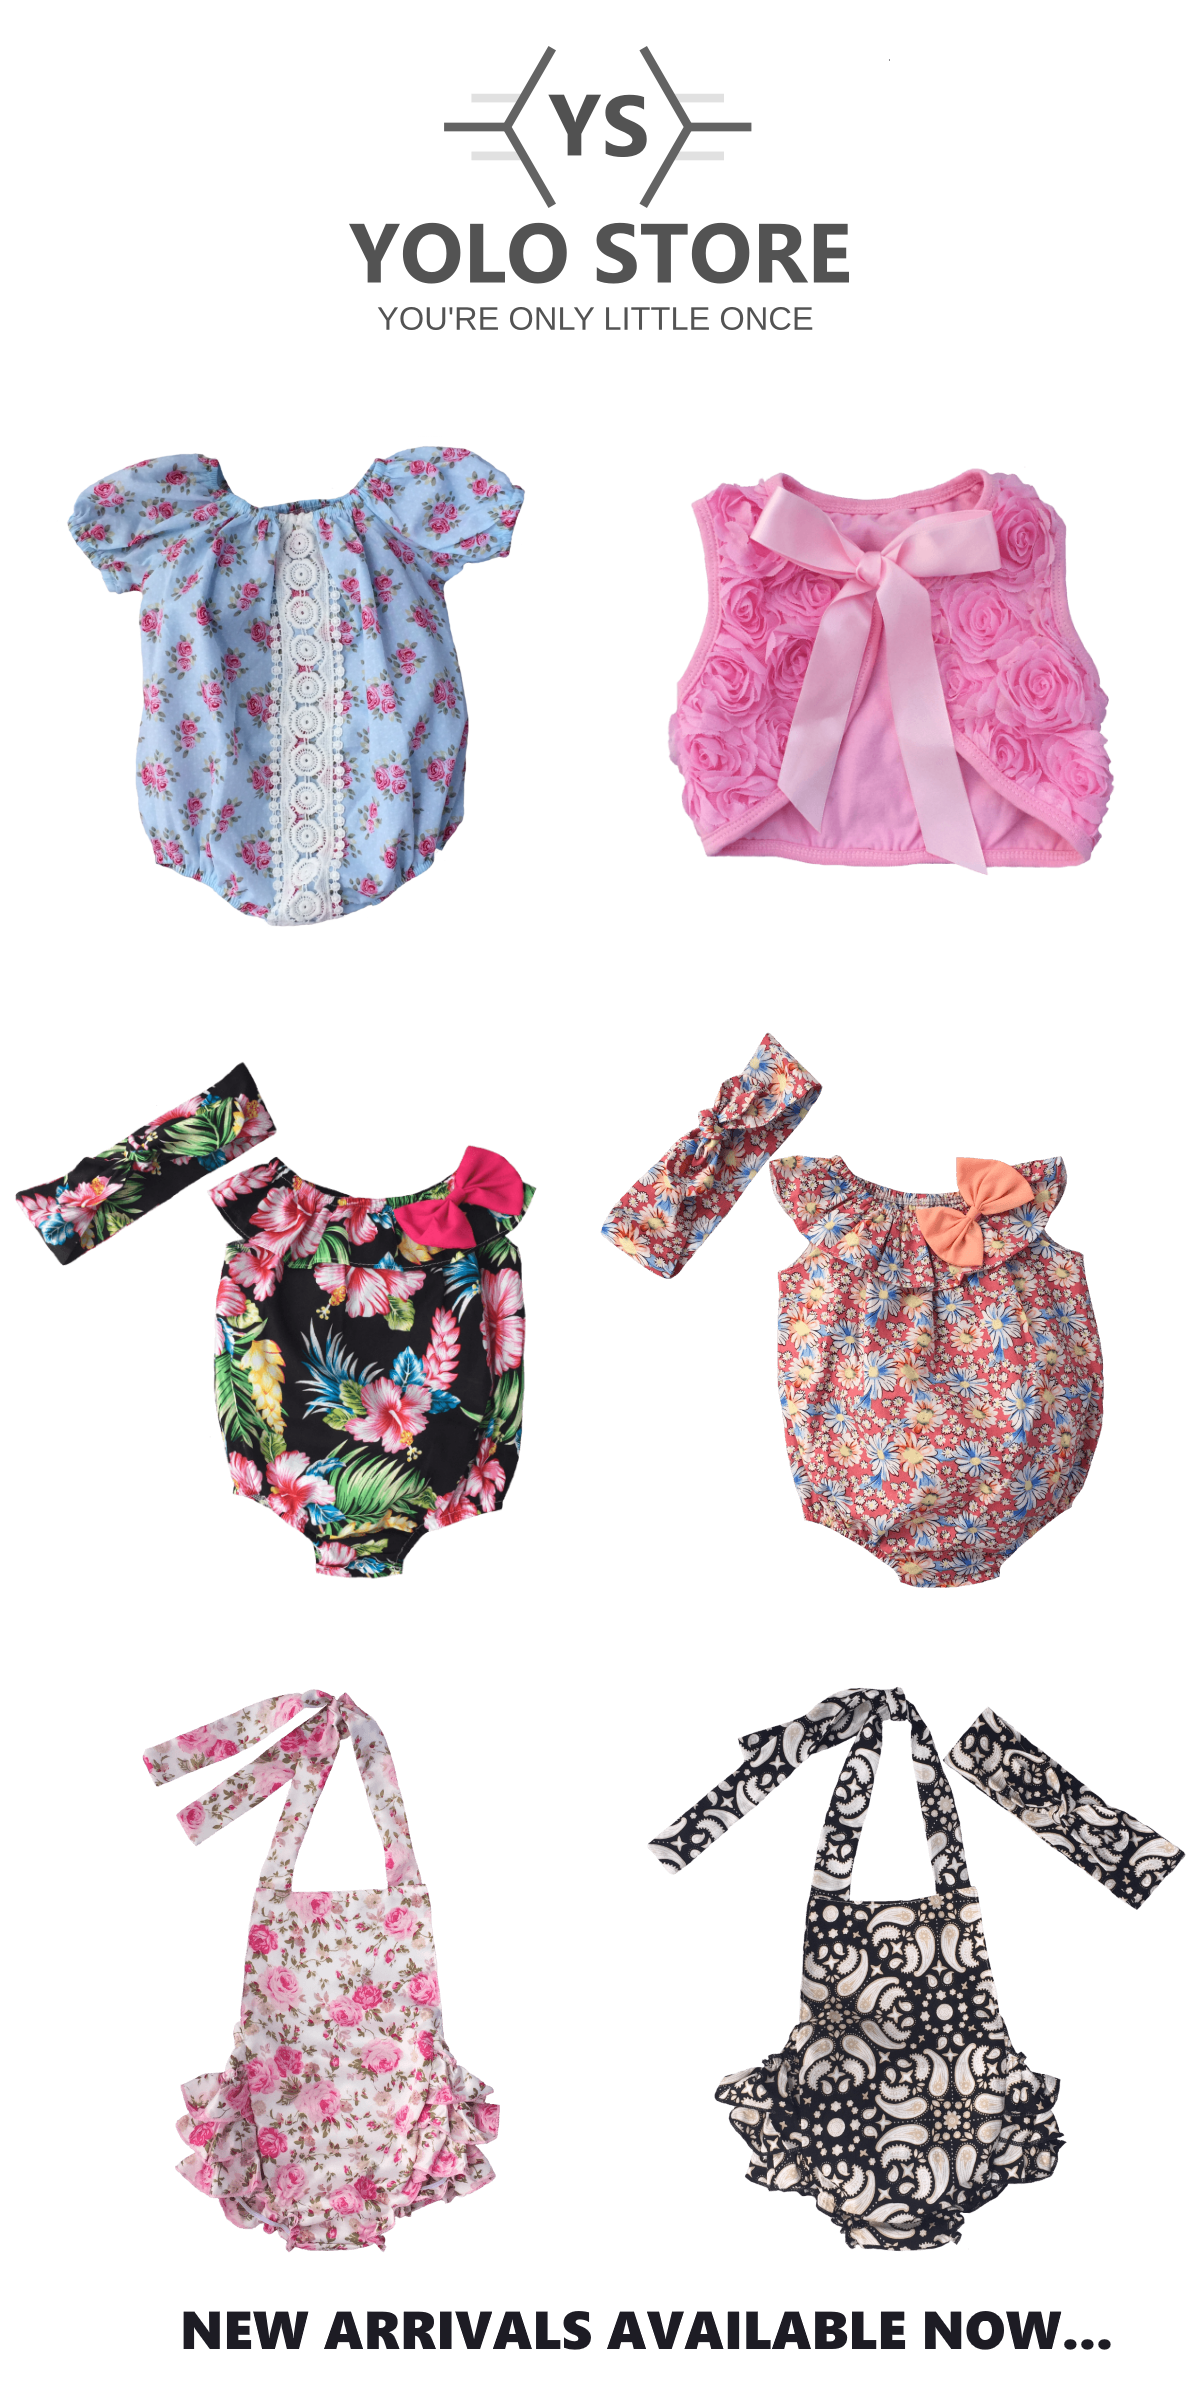 A selection of the latest vintage inspired baby clothing styles